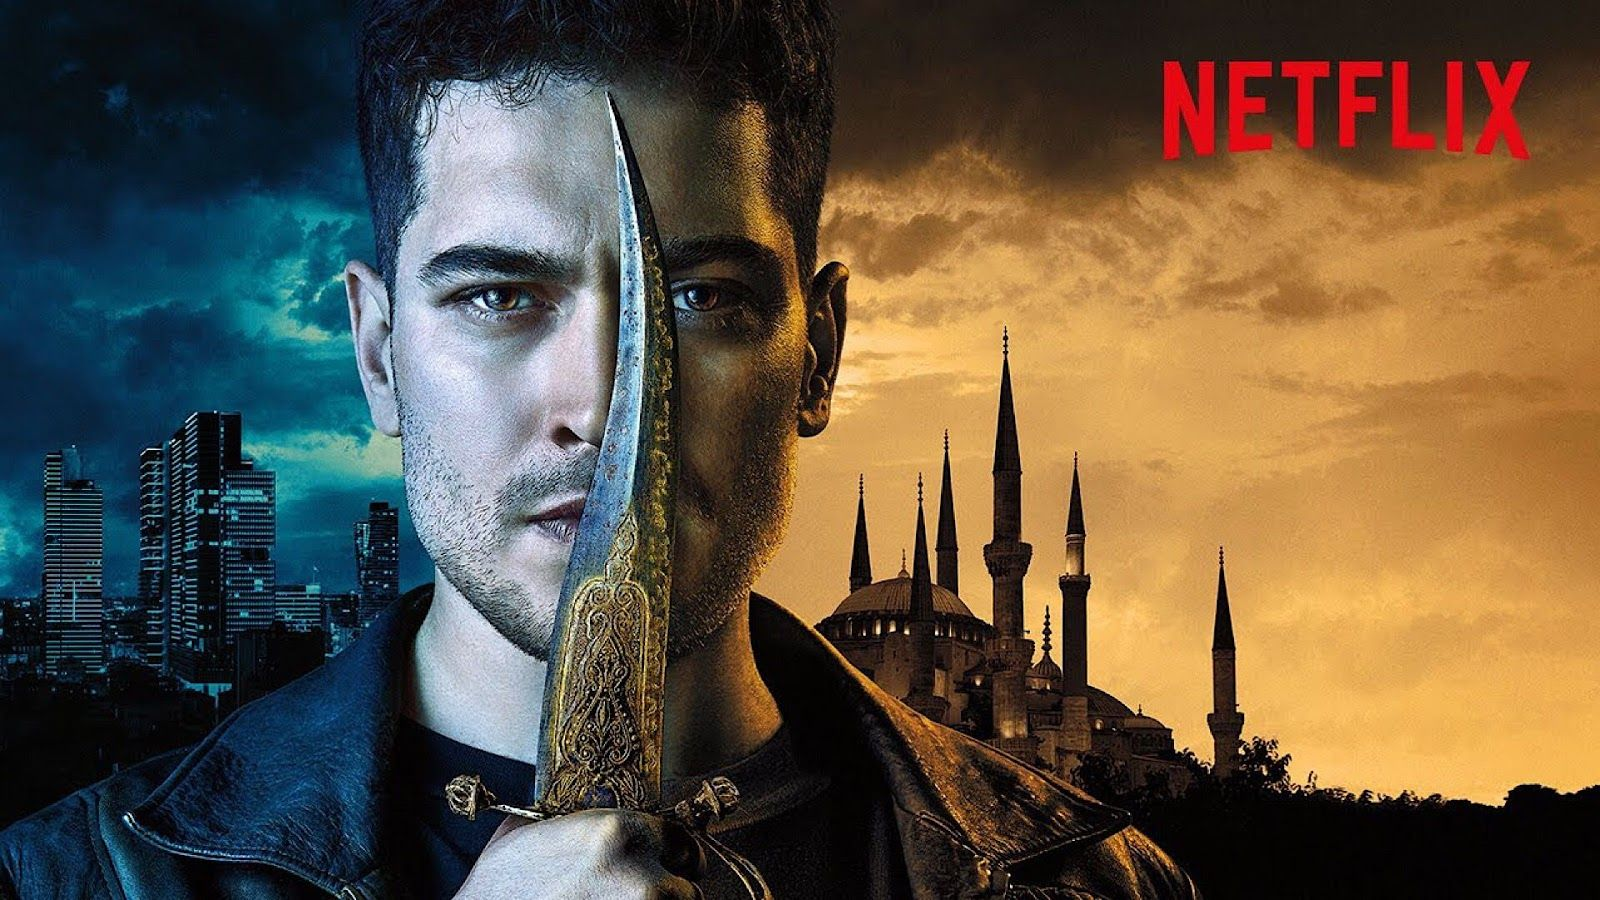 Pin by Grace Escutia on gracy The protector, New netflix